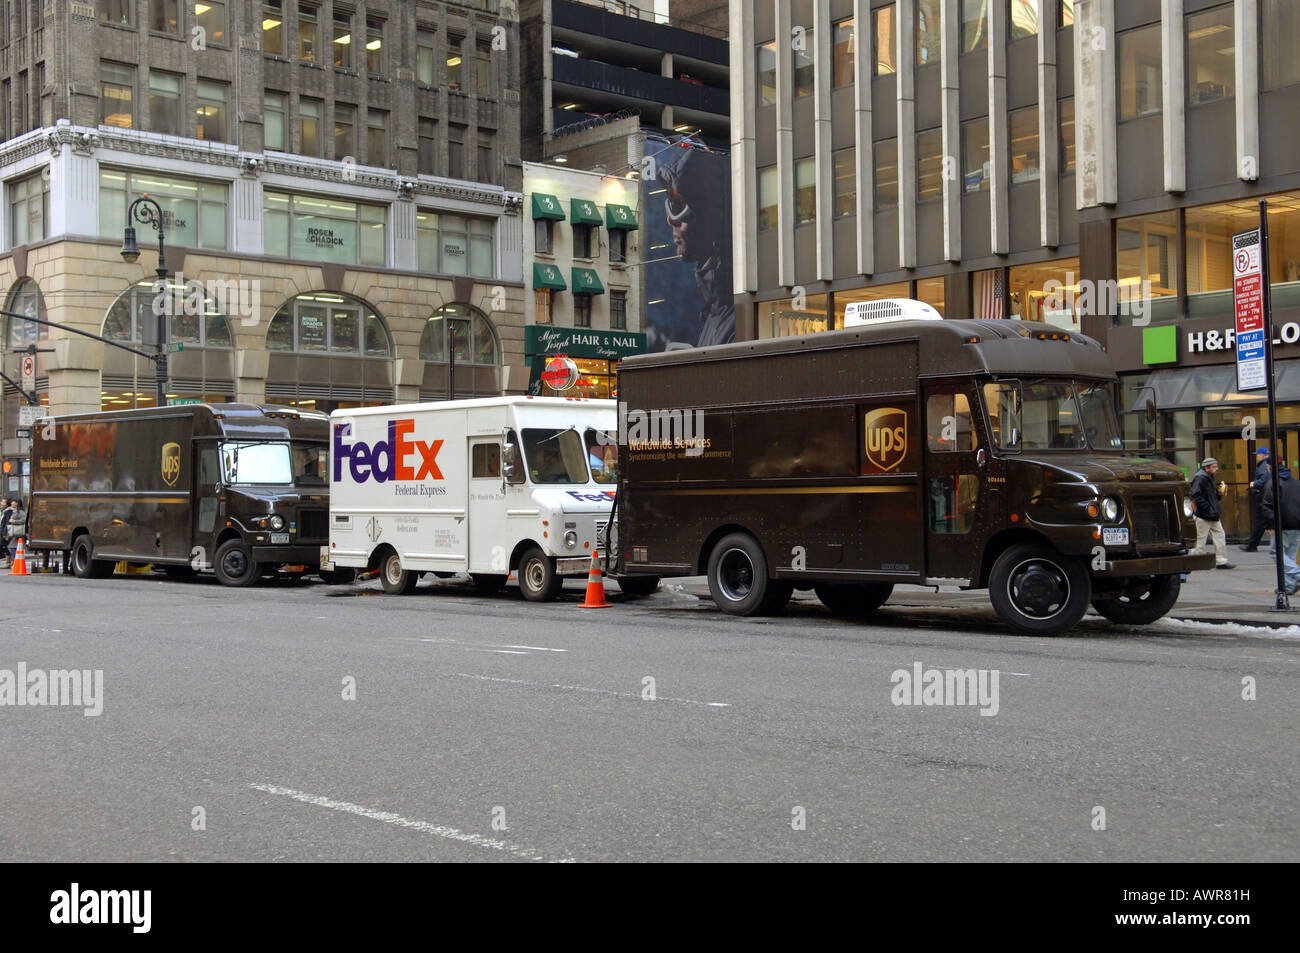 New York Pick Up Truck >> UPS trucks surround a FedEx truck parked in the Garment Center in NYC Stock Photo, Royalty Free ...